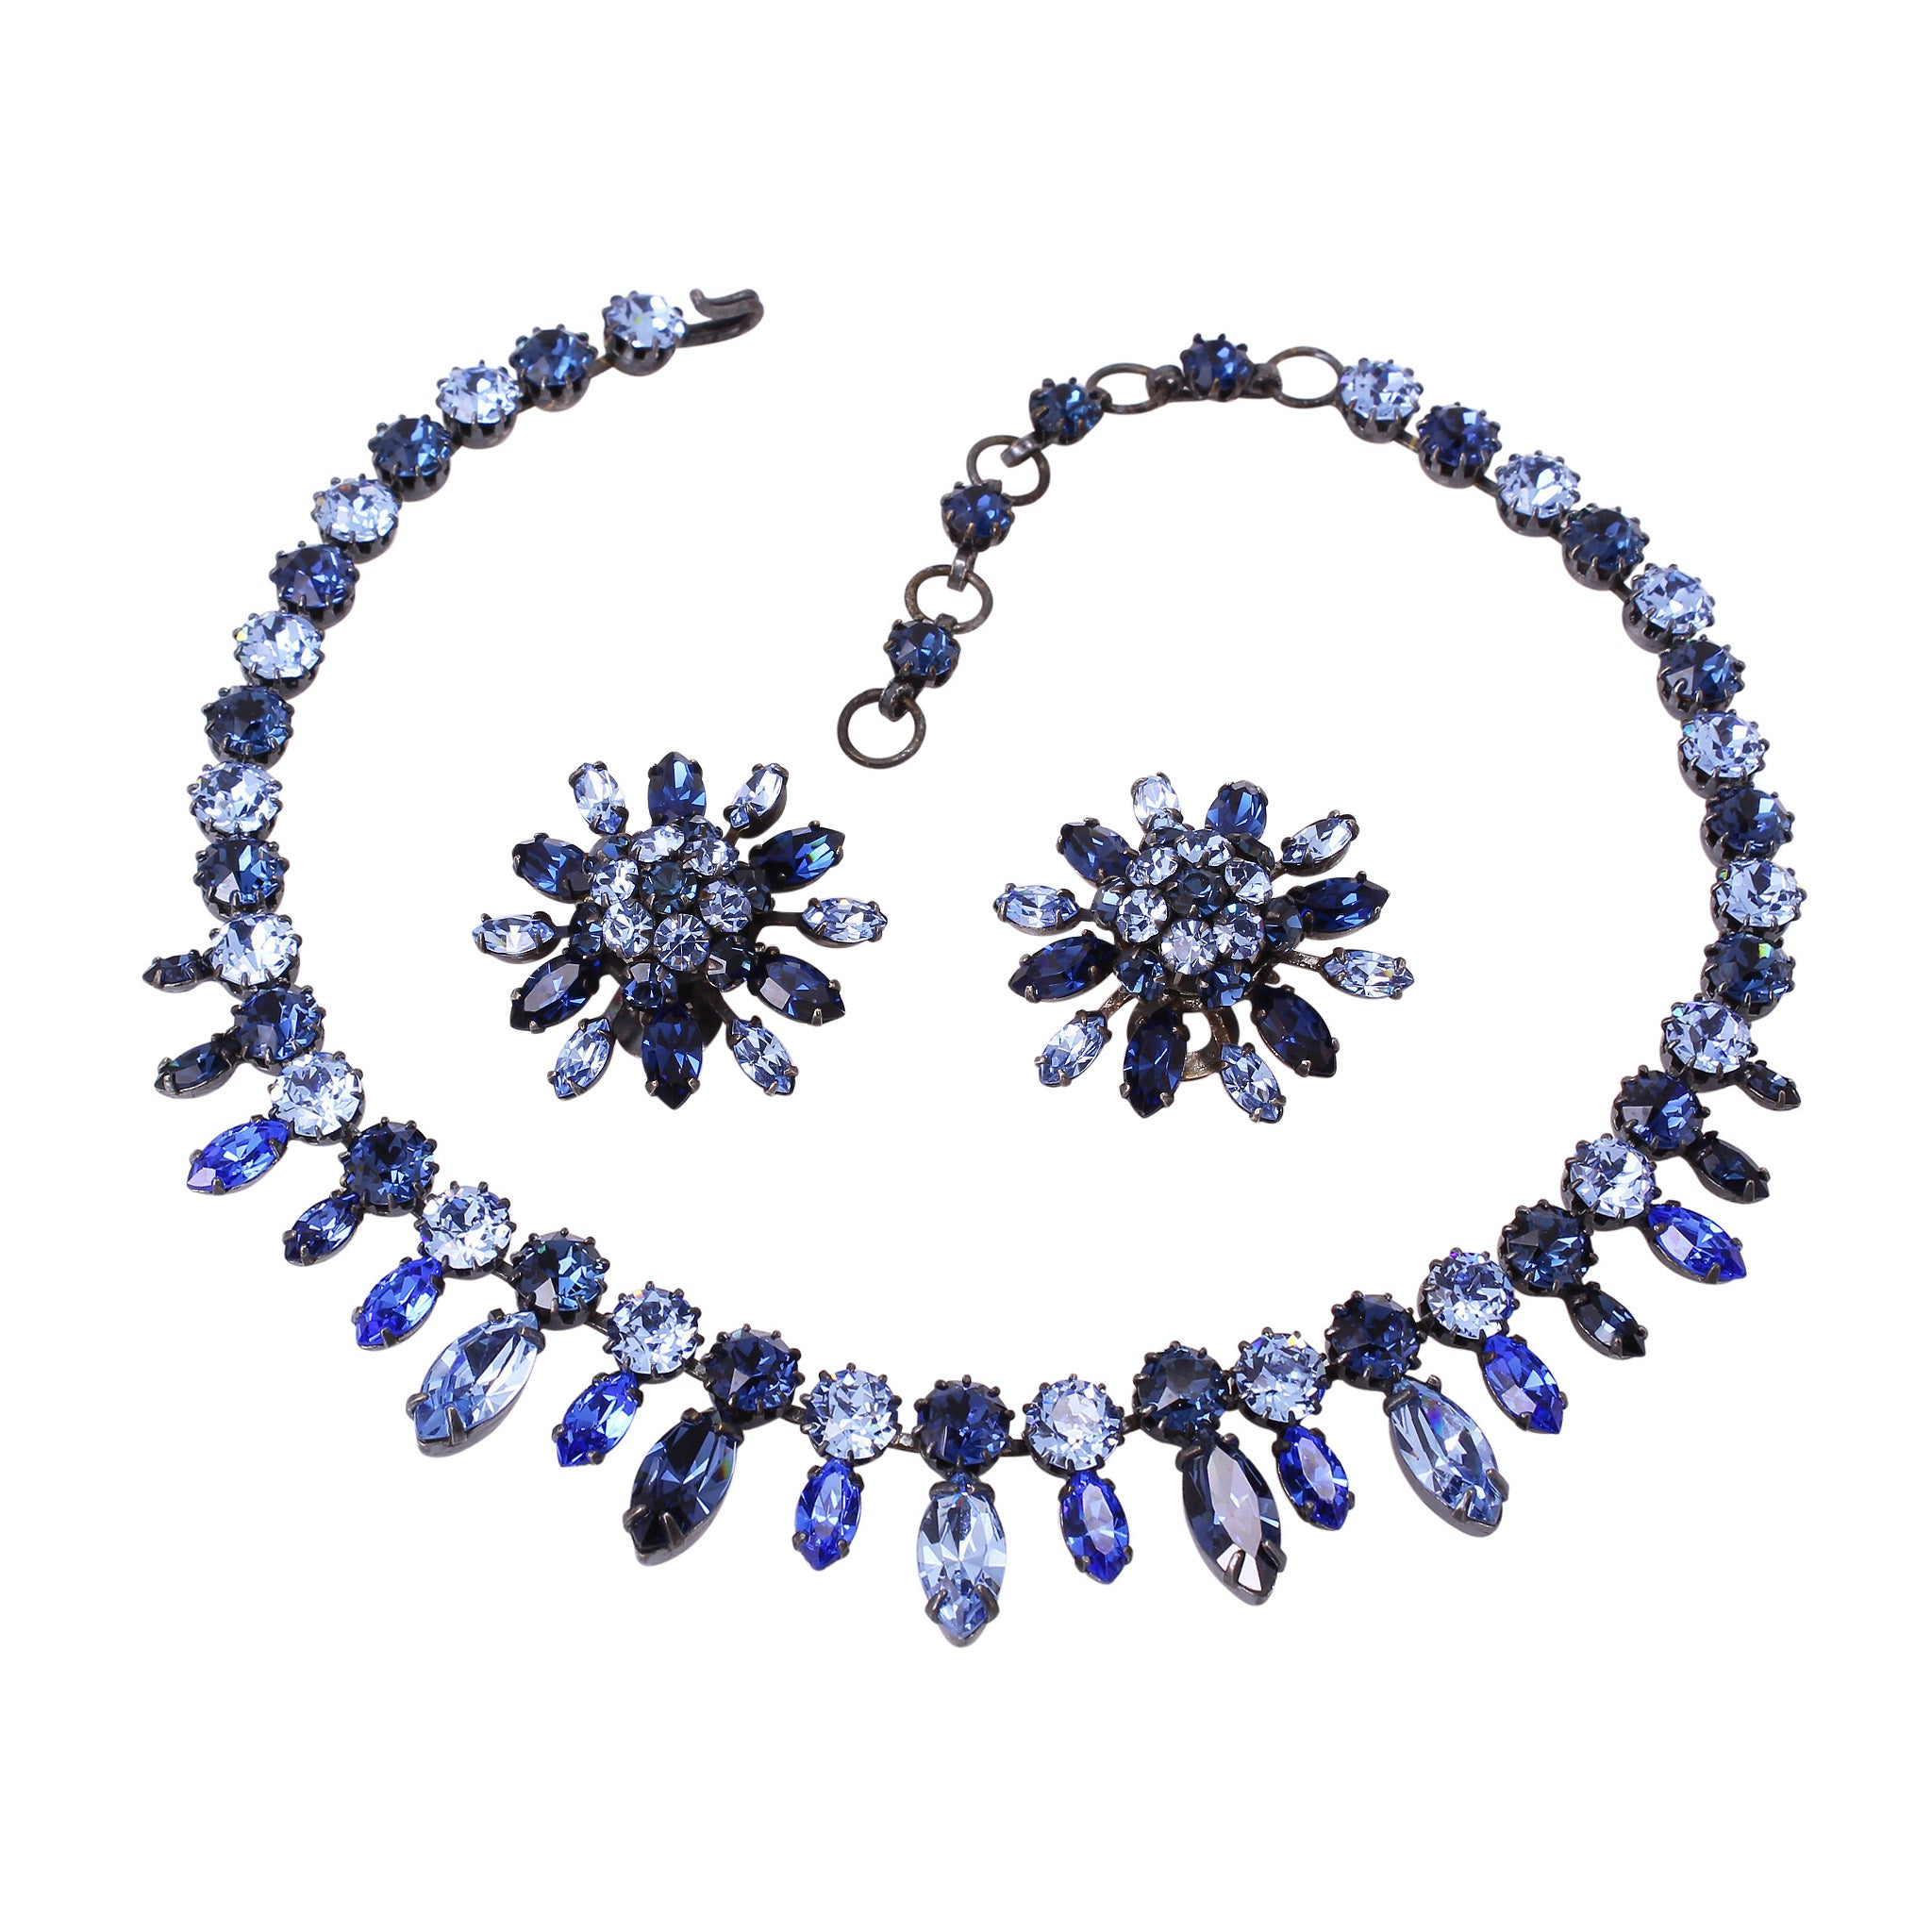 Schreiner Shades of Blue Rhinestone Necklace and Earrings Front